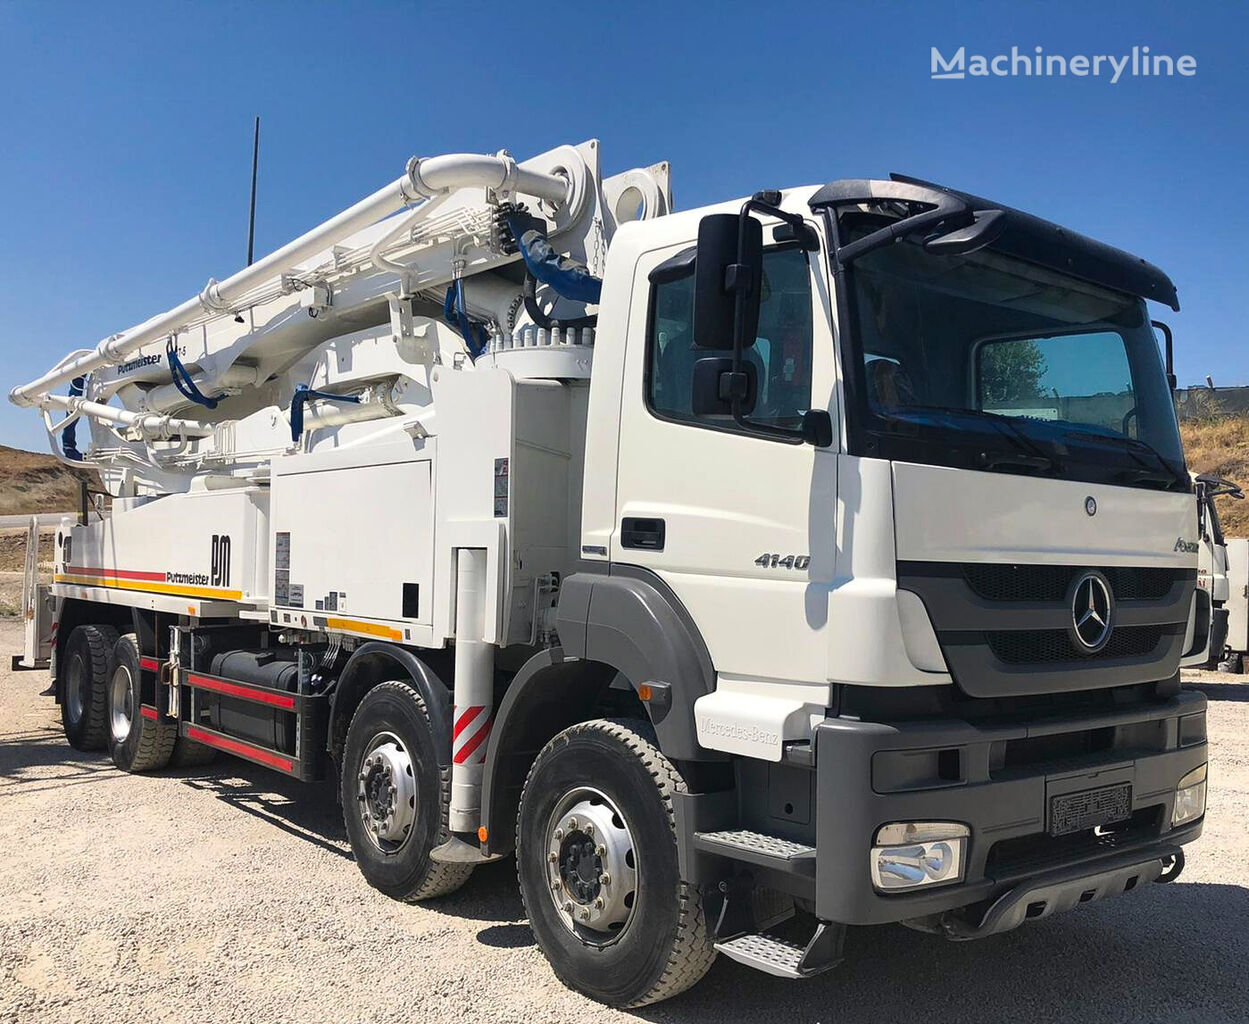 Putzmeister 47-5 ergonic 2013 on chassis MERCEDES-BENZ Axor 4140 concrete pump